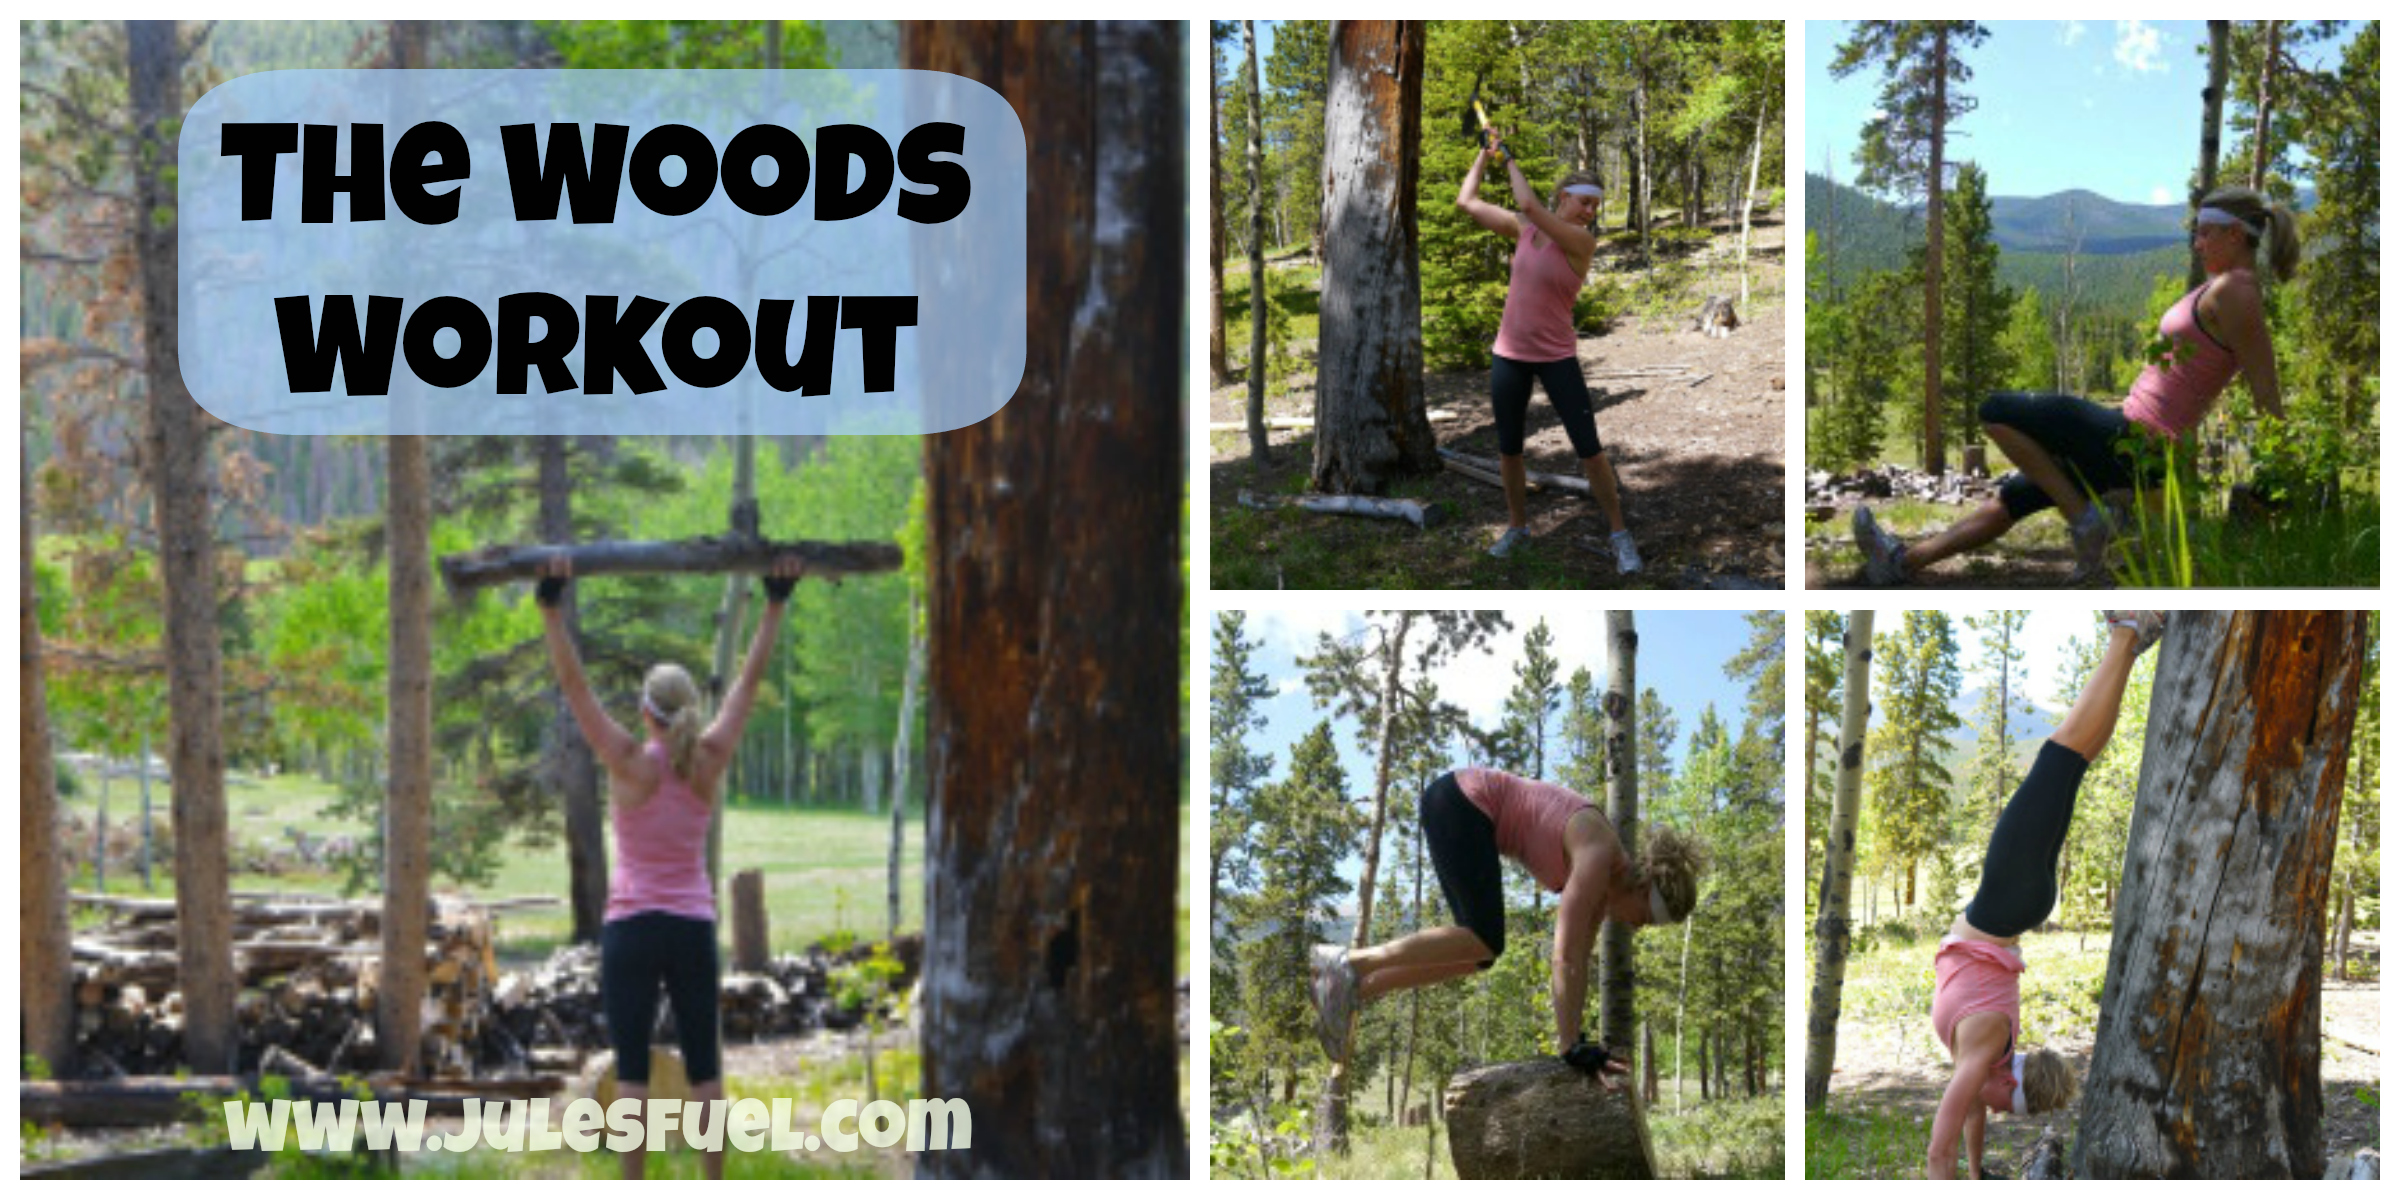 The woods workout